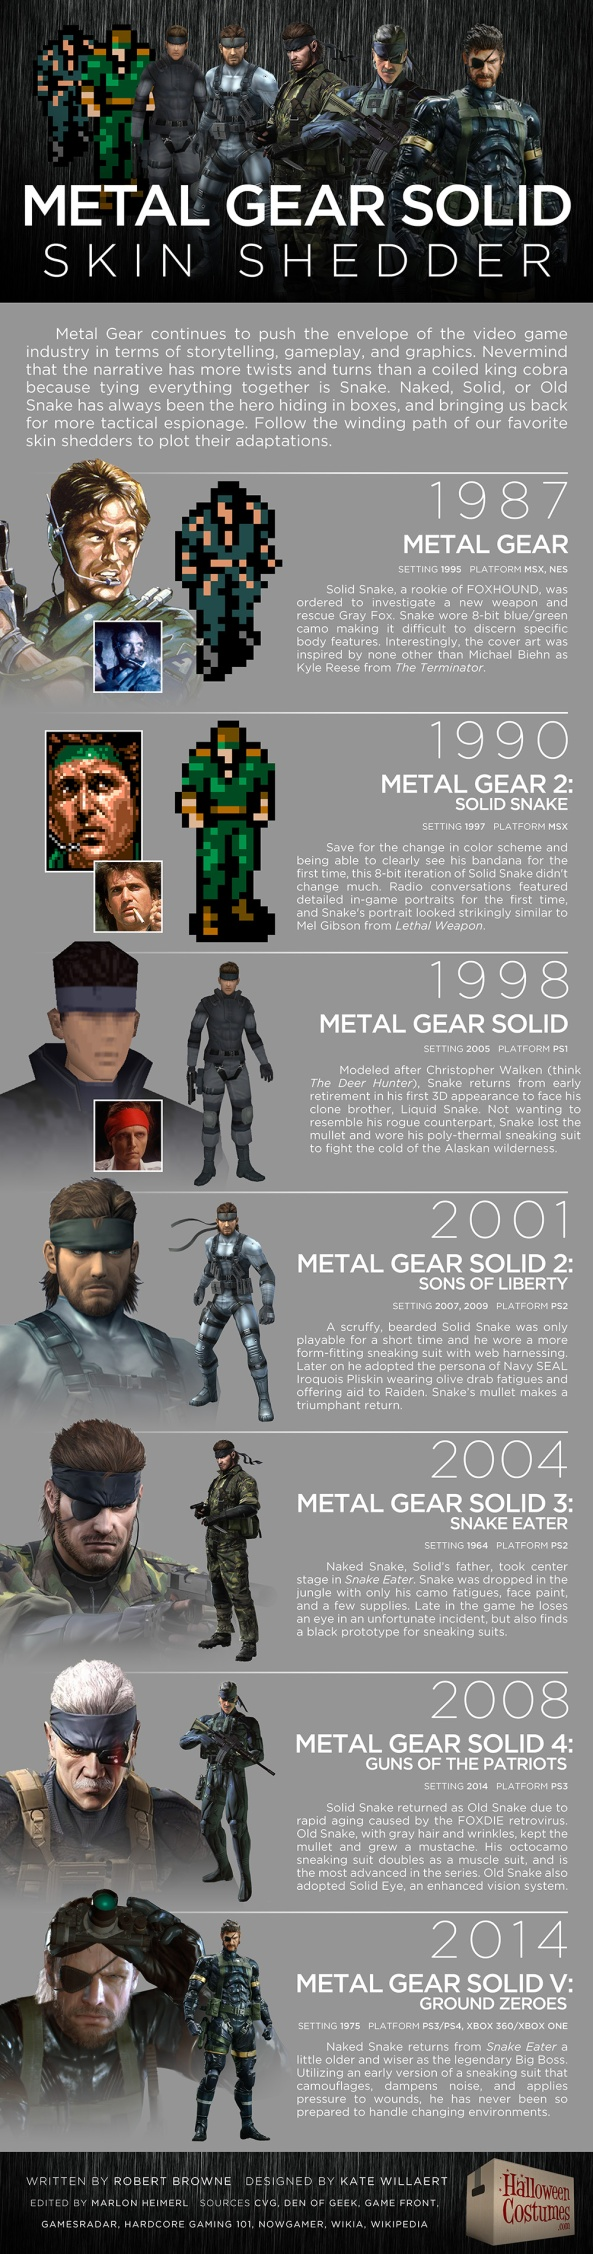 Metal-Gear-Solid-Infographic